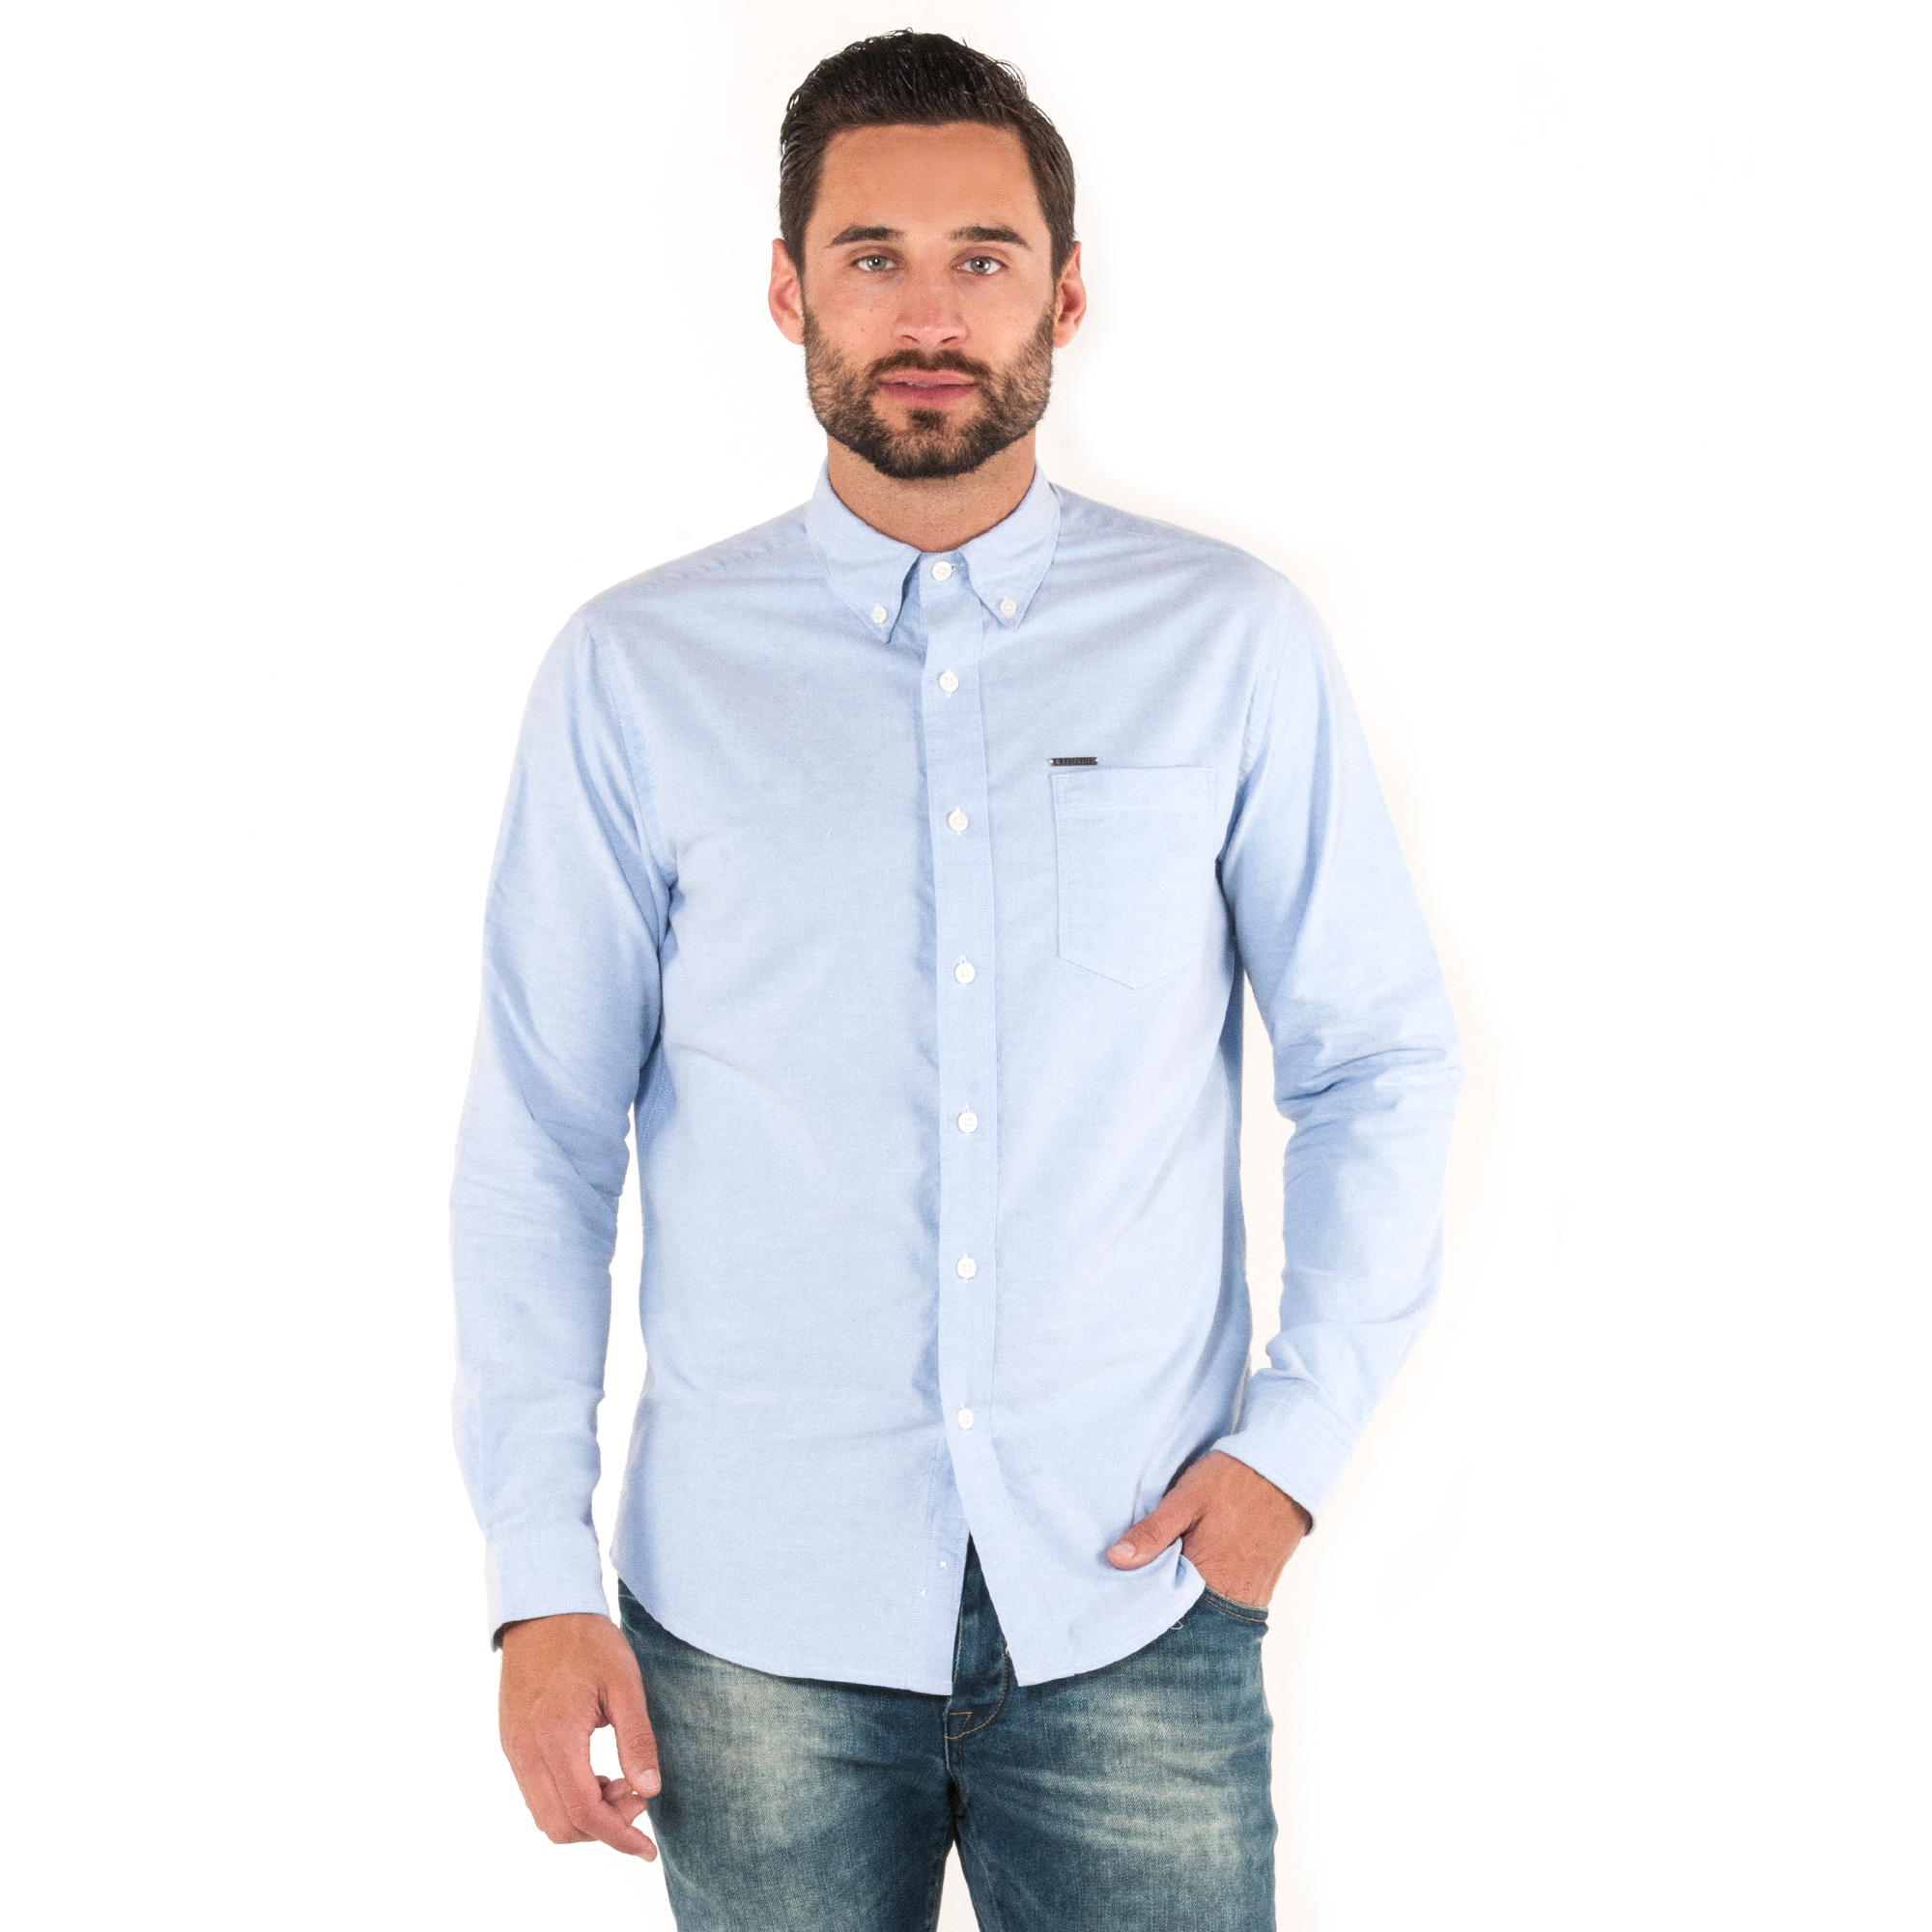 883 Police Mens Reed White Oxford Shirt Smart Casual Slim